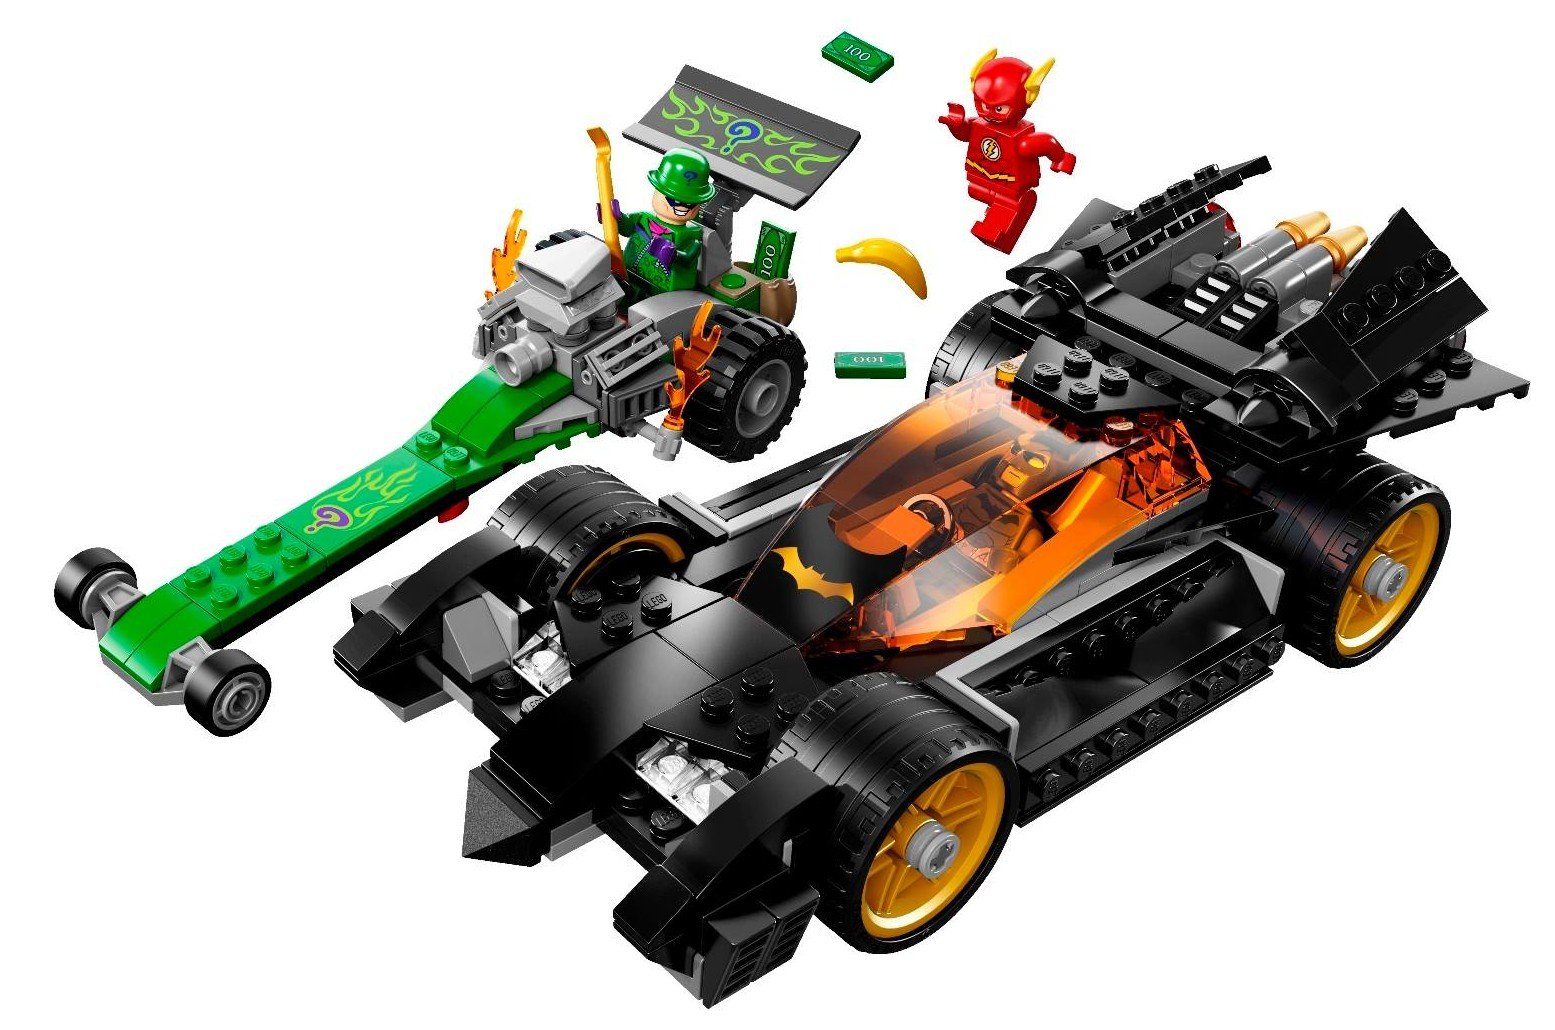 lego batman 2014 the riddler chase 76012 set photos preview bricks and bloks. Black Bedroom Furniture Sets. Home Design Ideas